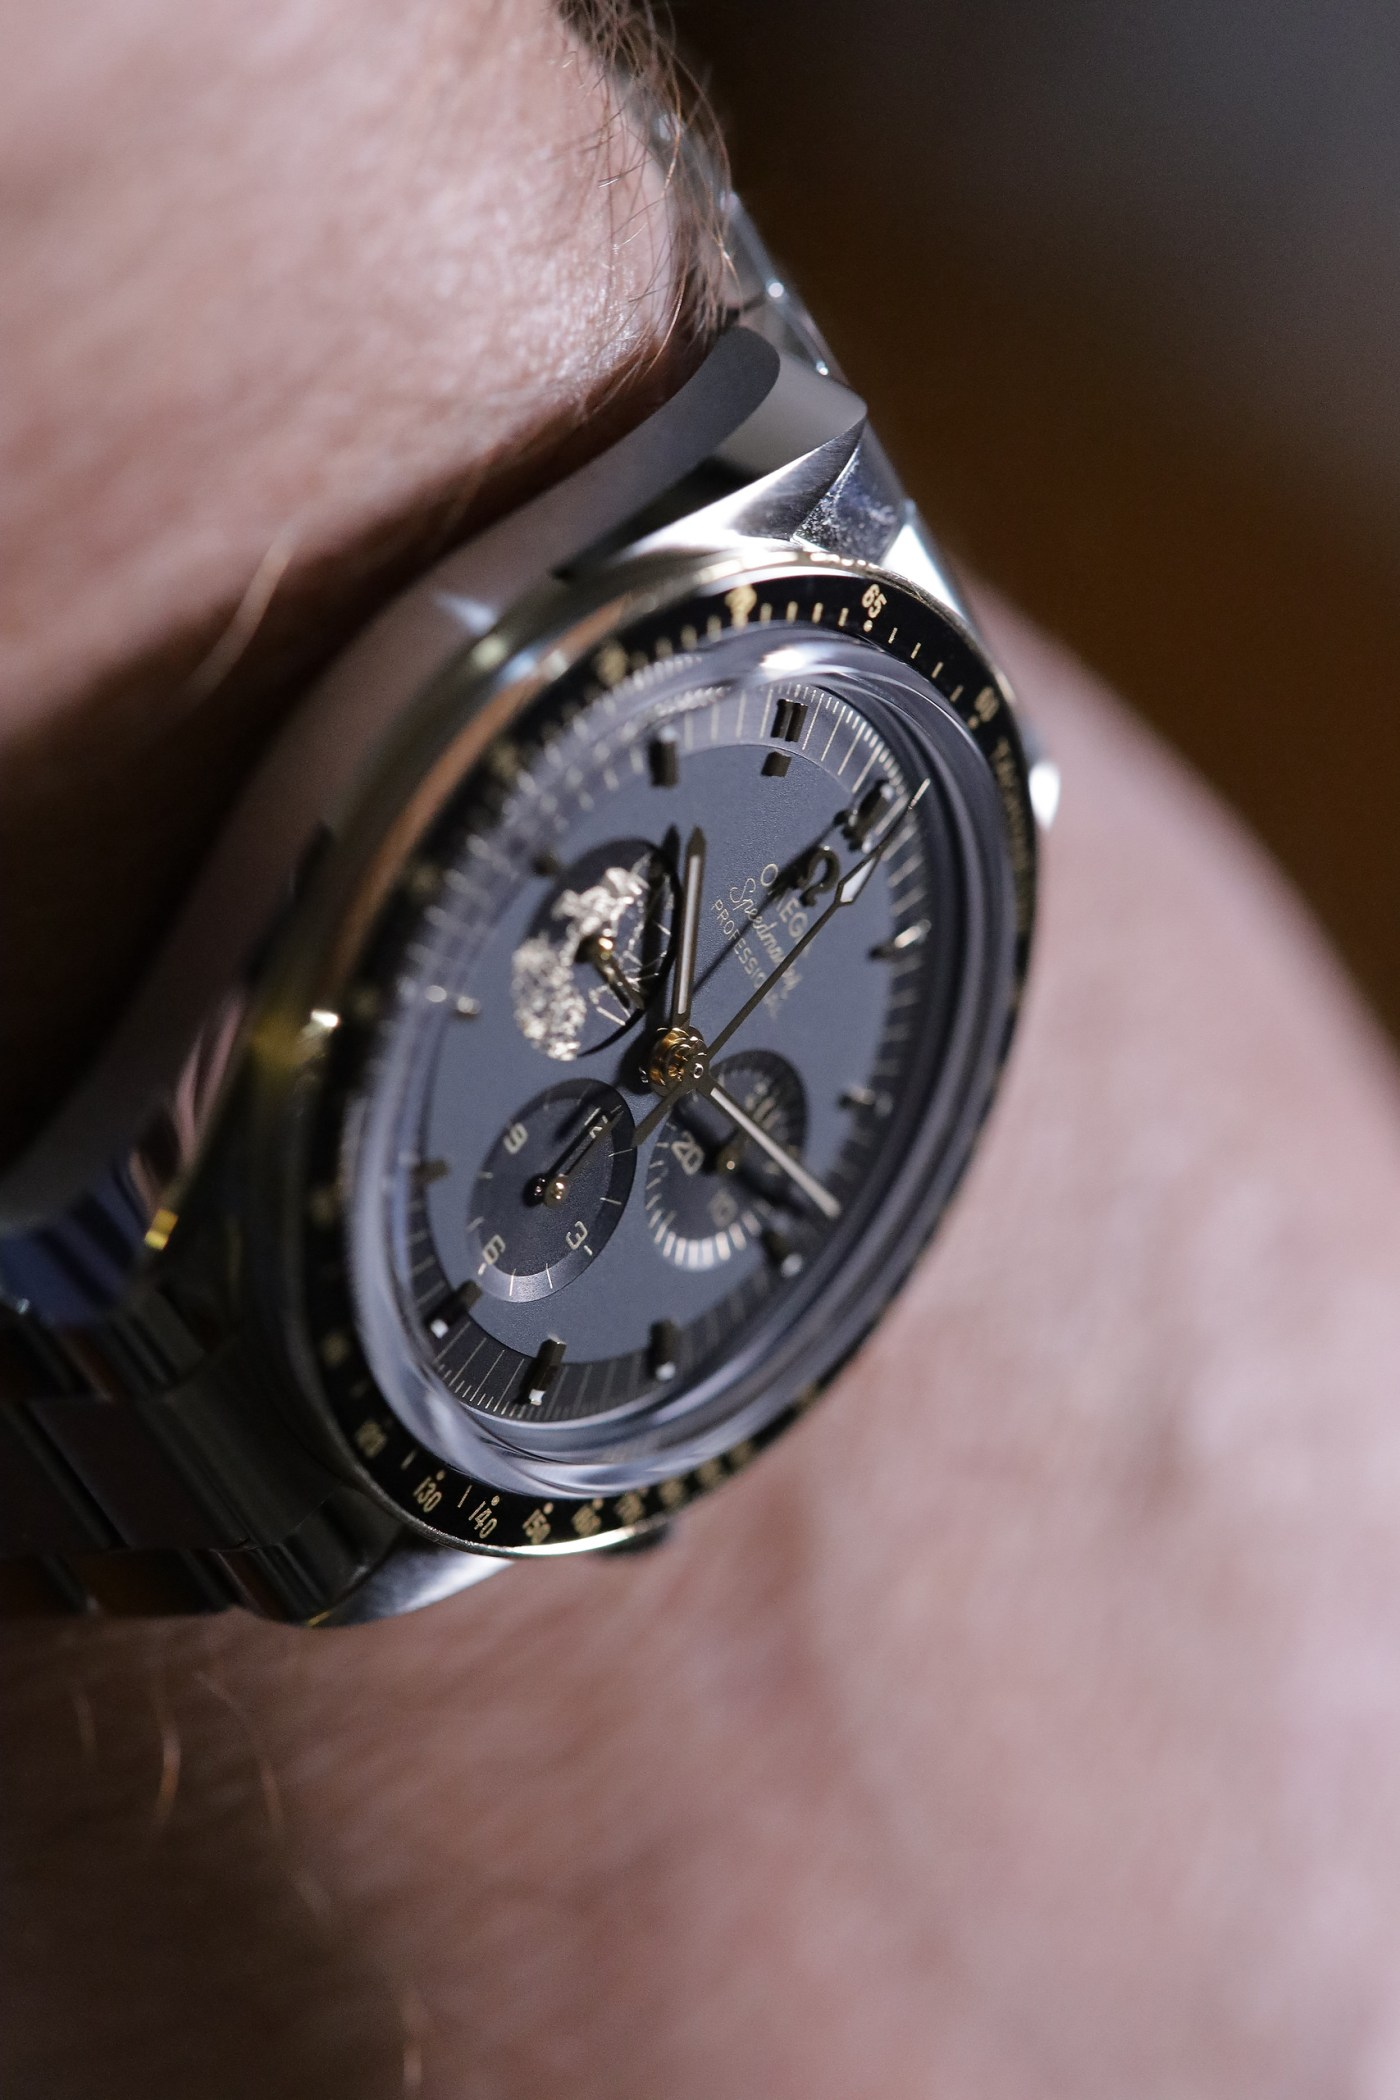 2019 Omega Speedmaster Professional 50th Anniversary Limited Edition